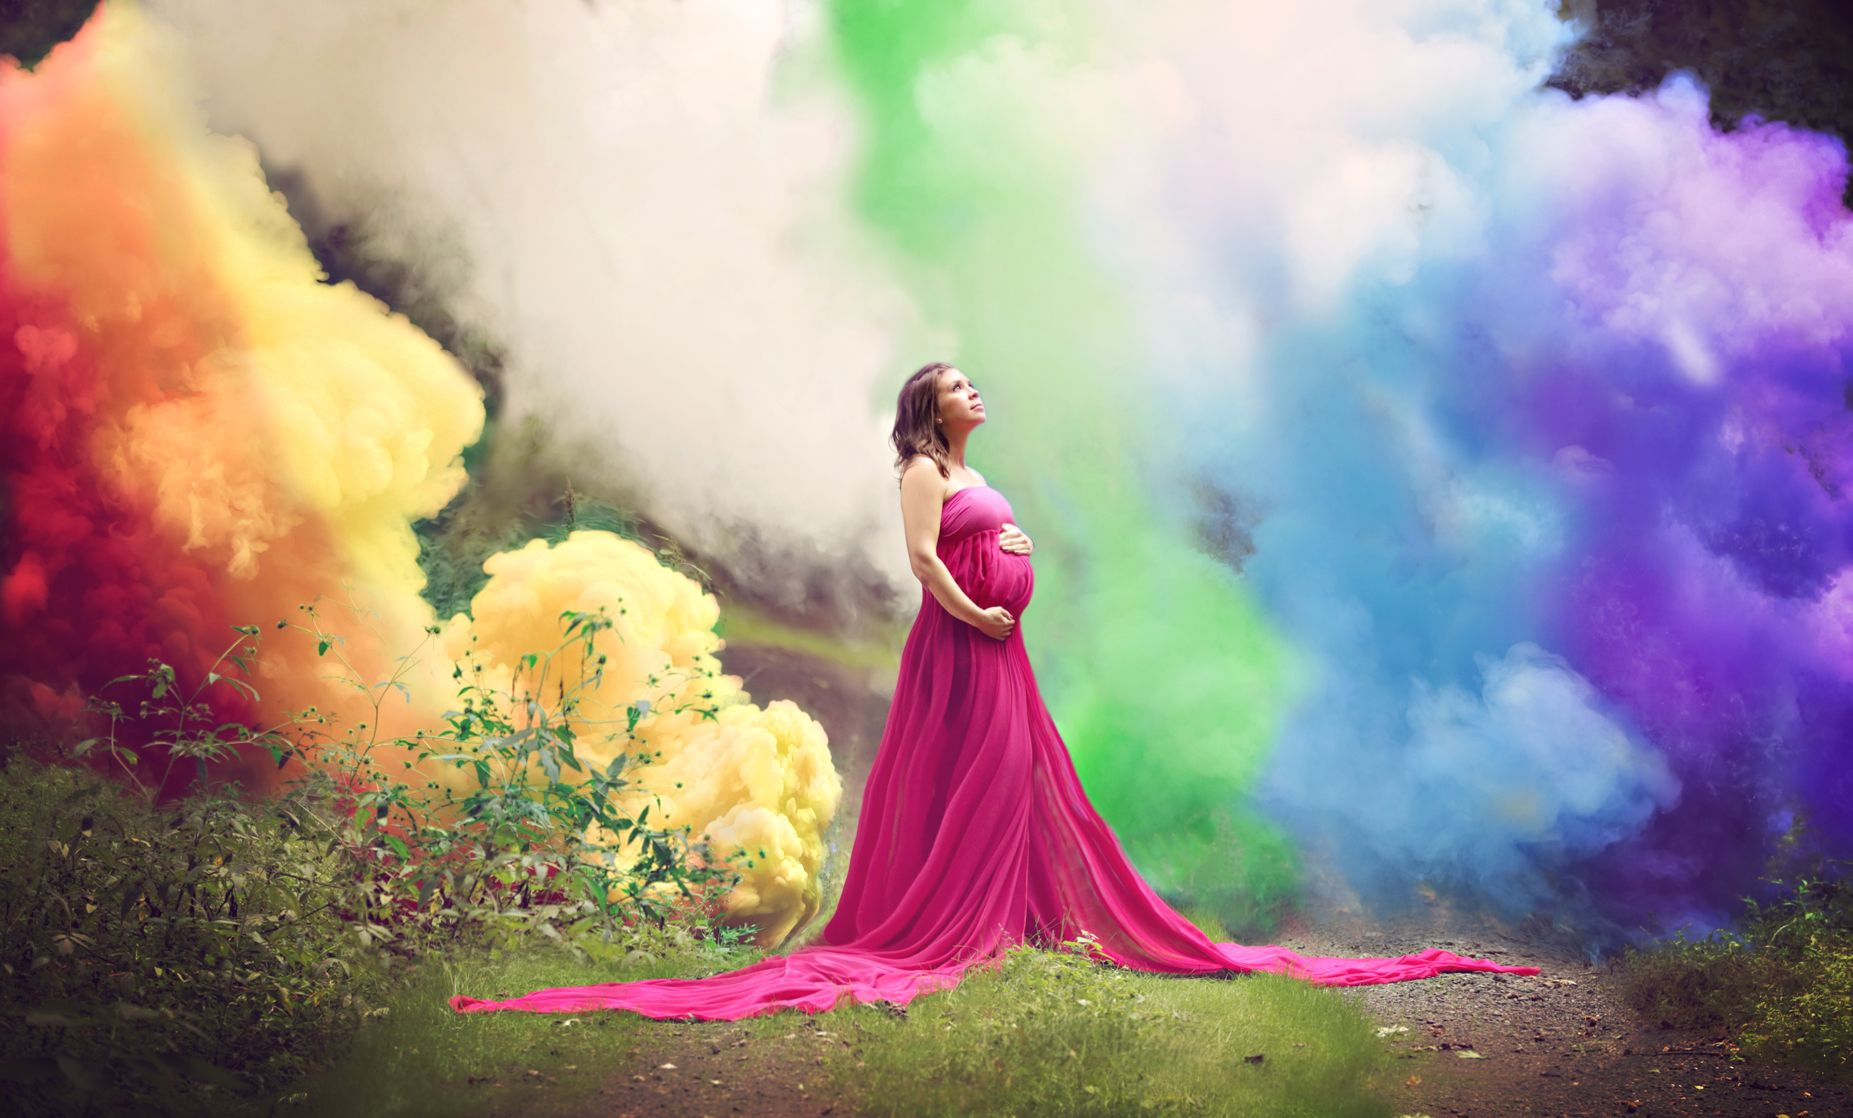 Rainbow baby maternity photography having a baby after infant loss